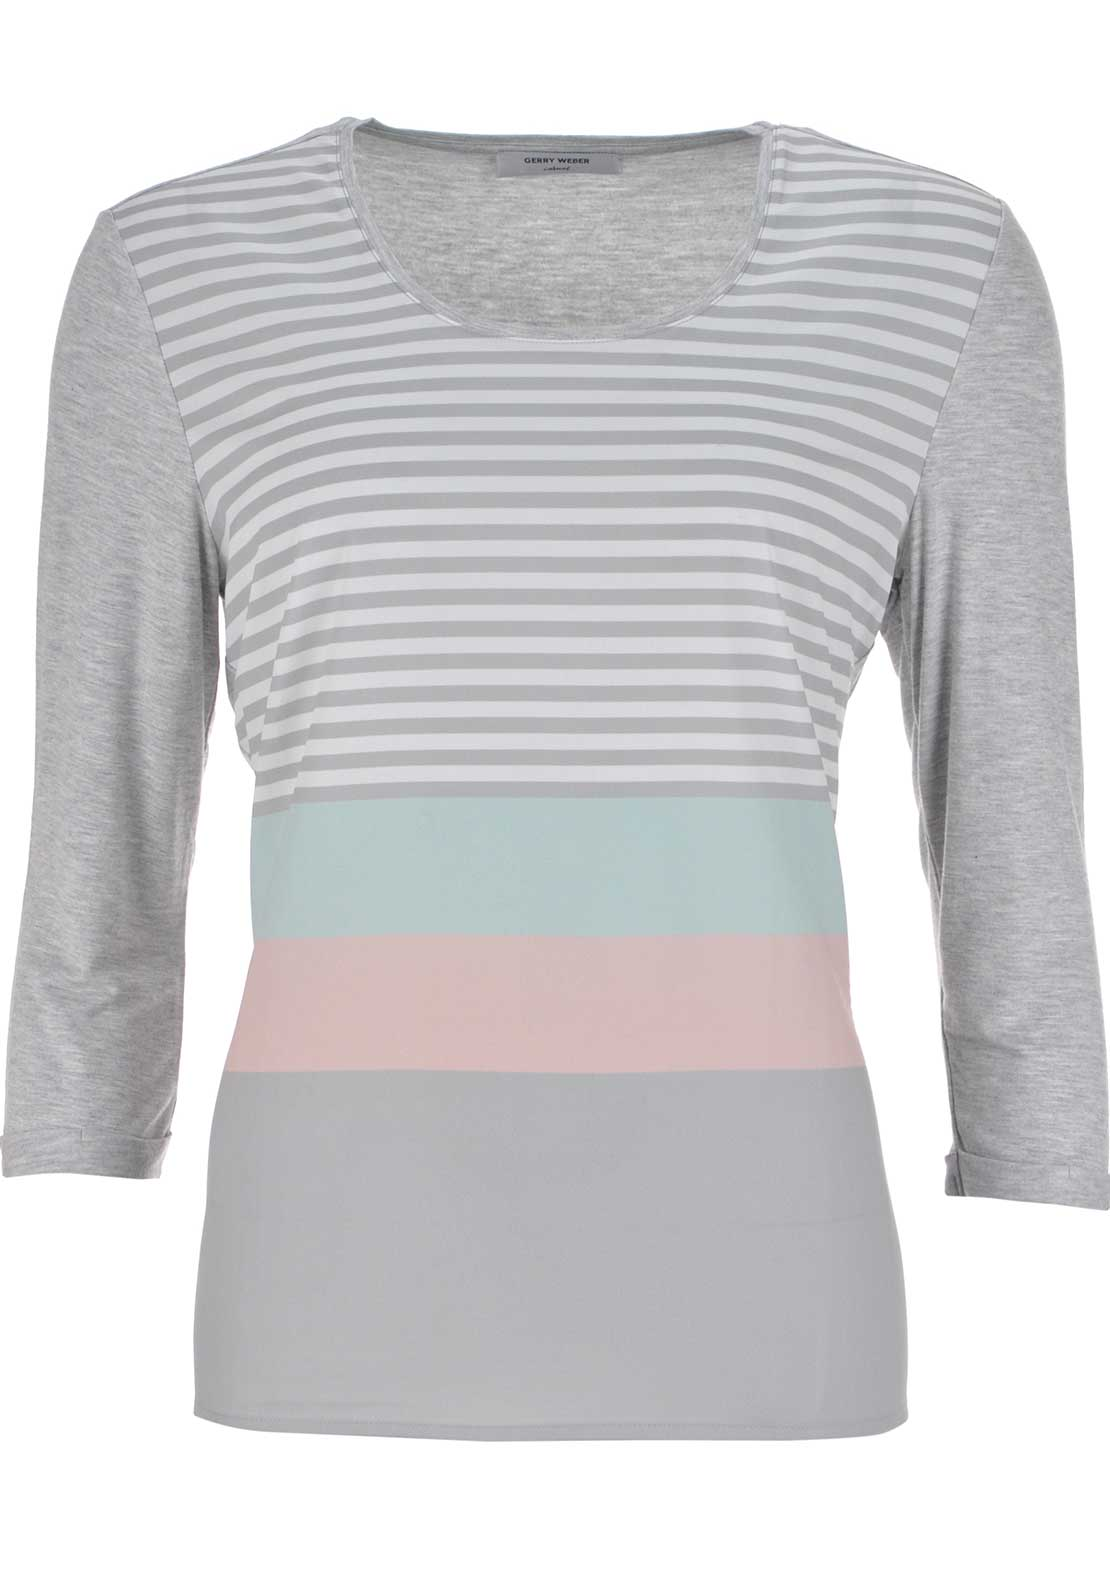 Gerry Weber Striped Cropped Sleeve Top, Grey Multi